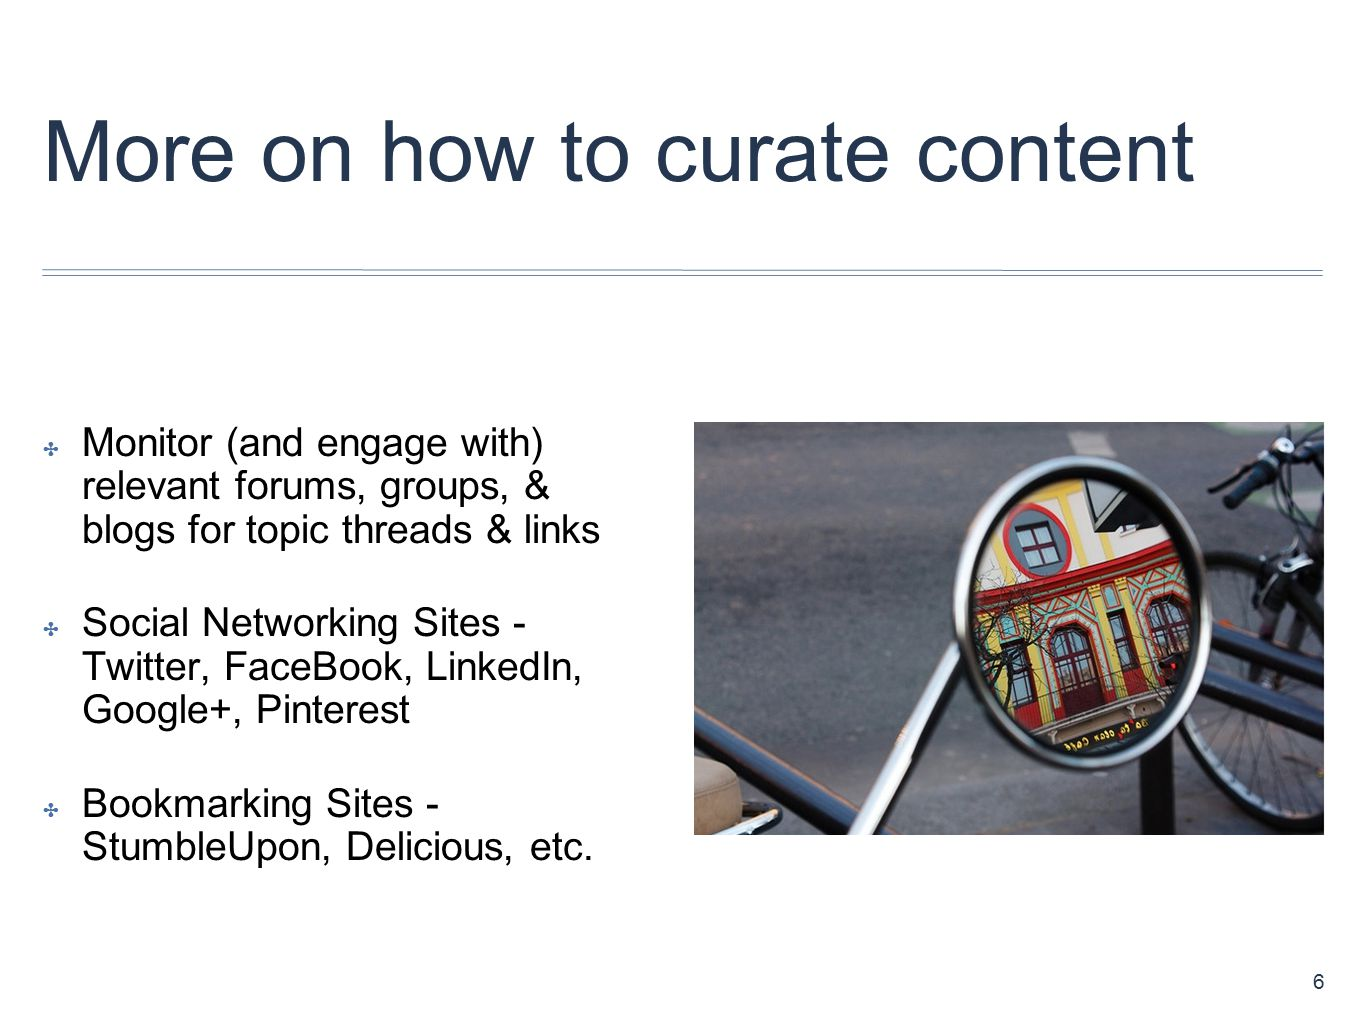 More on how to curate content ✤ Monitor (and engage with) relevant forums, groups, & blogs for topic threads & links ✤ Social Networking Sites - Twitter, FaceBook, LinkedIn, Google+, Pinterest ✤ Bookmarking Sites - StumbleUpon, Delicious, etc.